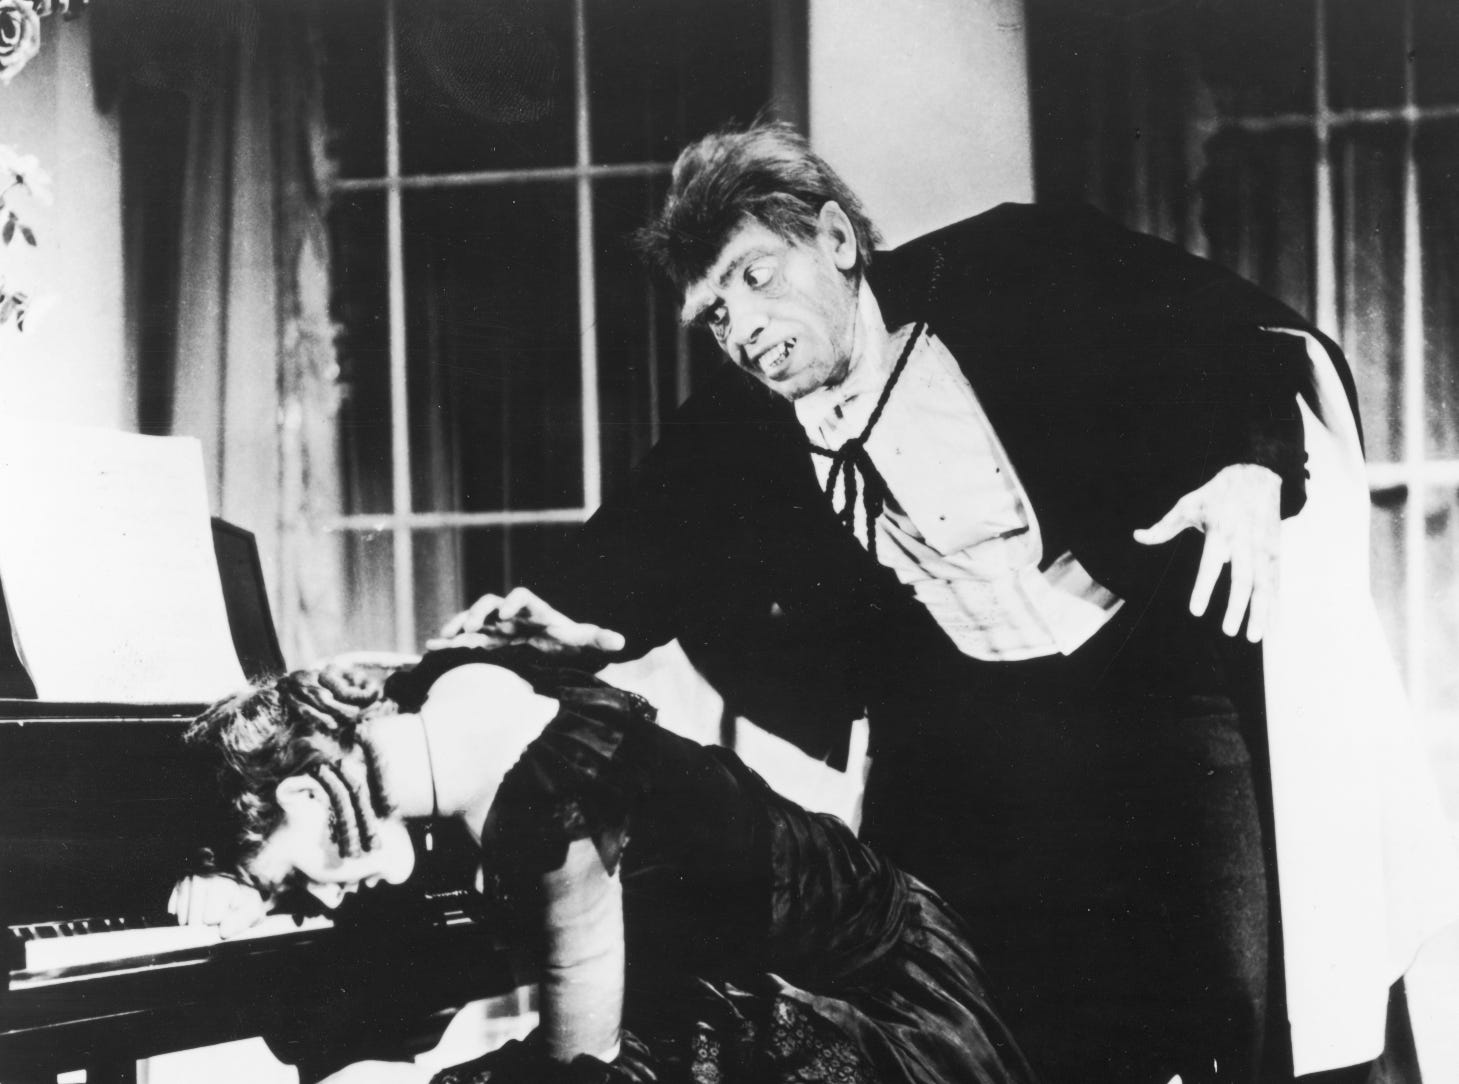 """Fredric March, right, in a scene from the 1932 motion picture """"Dr. Jekyll and Mr. Hyde."""" March won the Academy Award for Best Actor for his performance that year."""